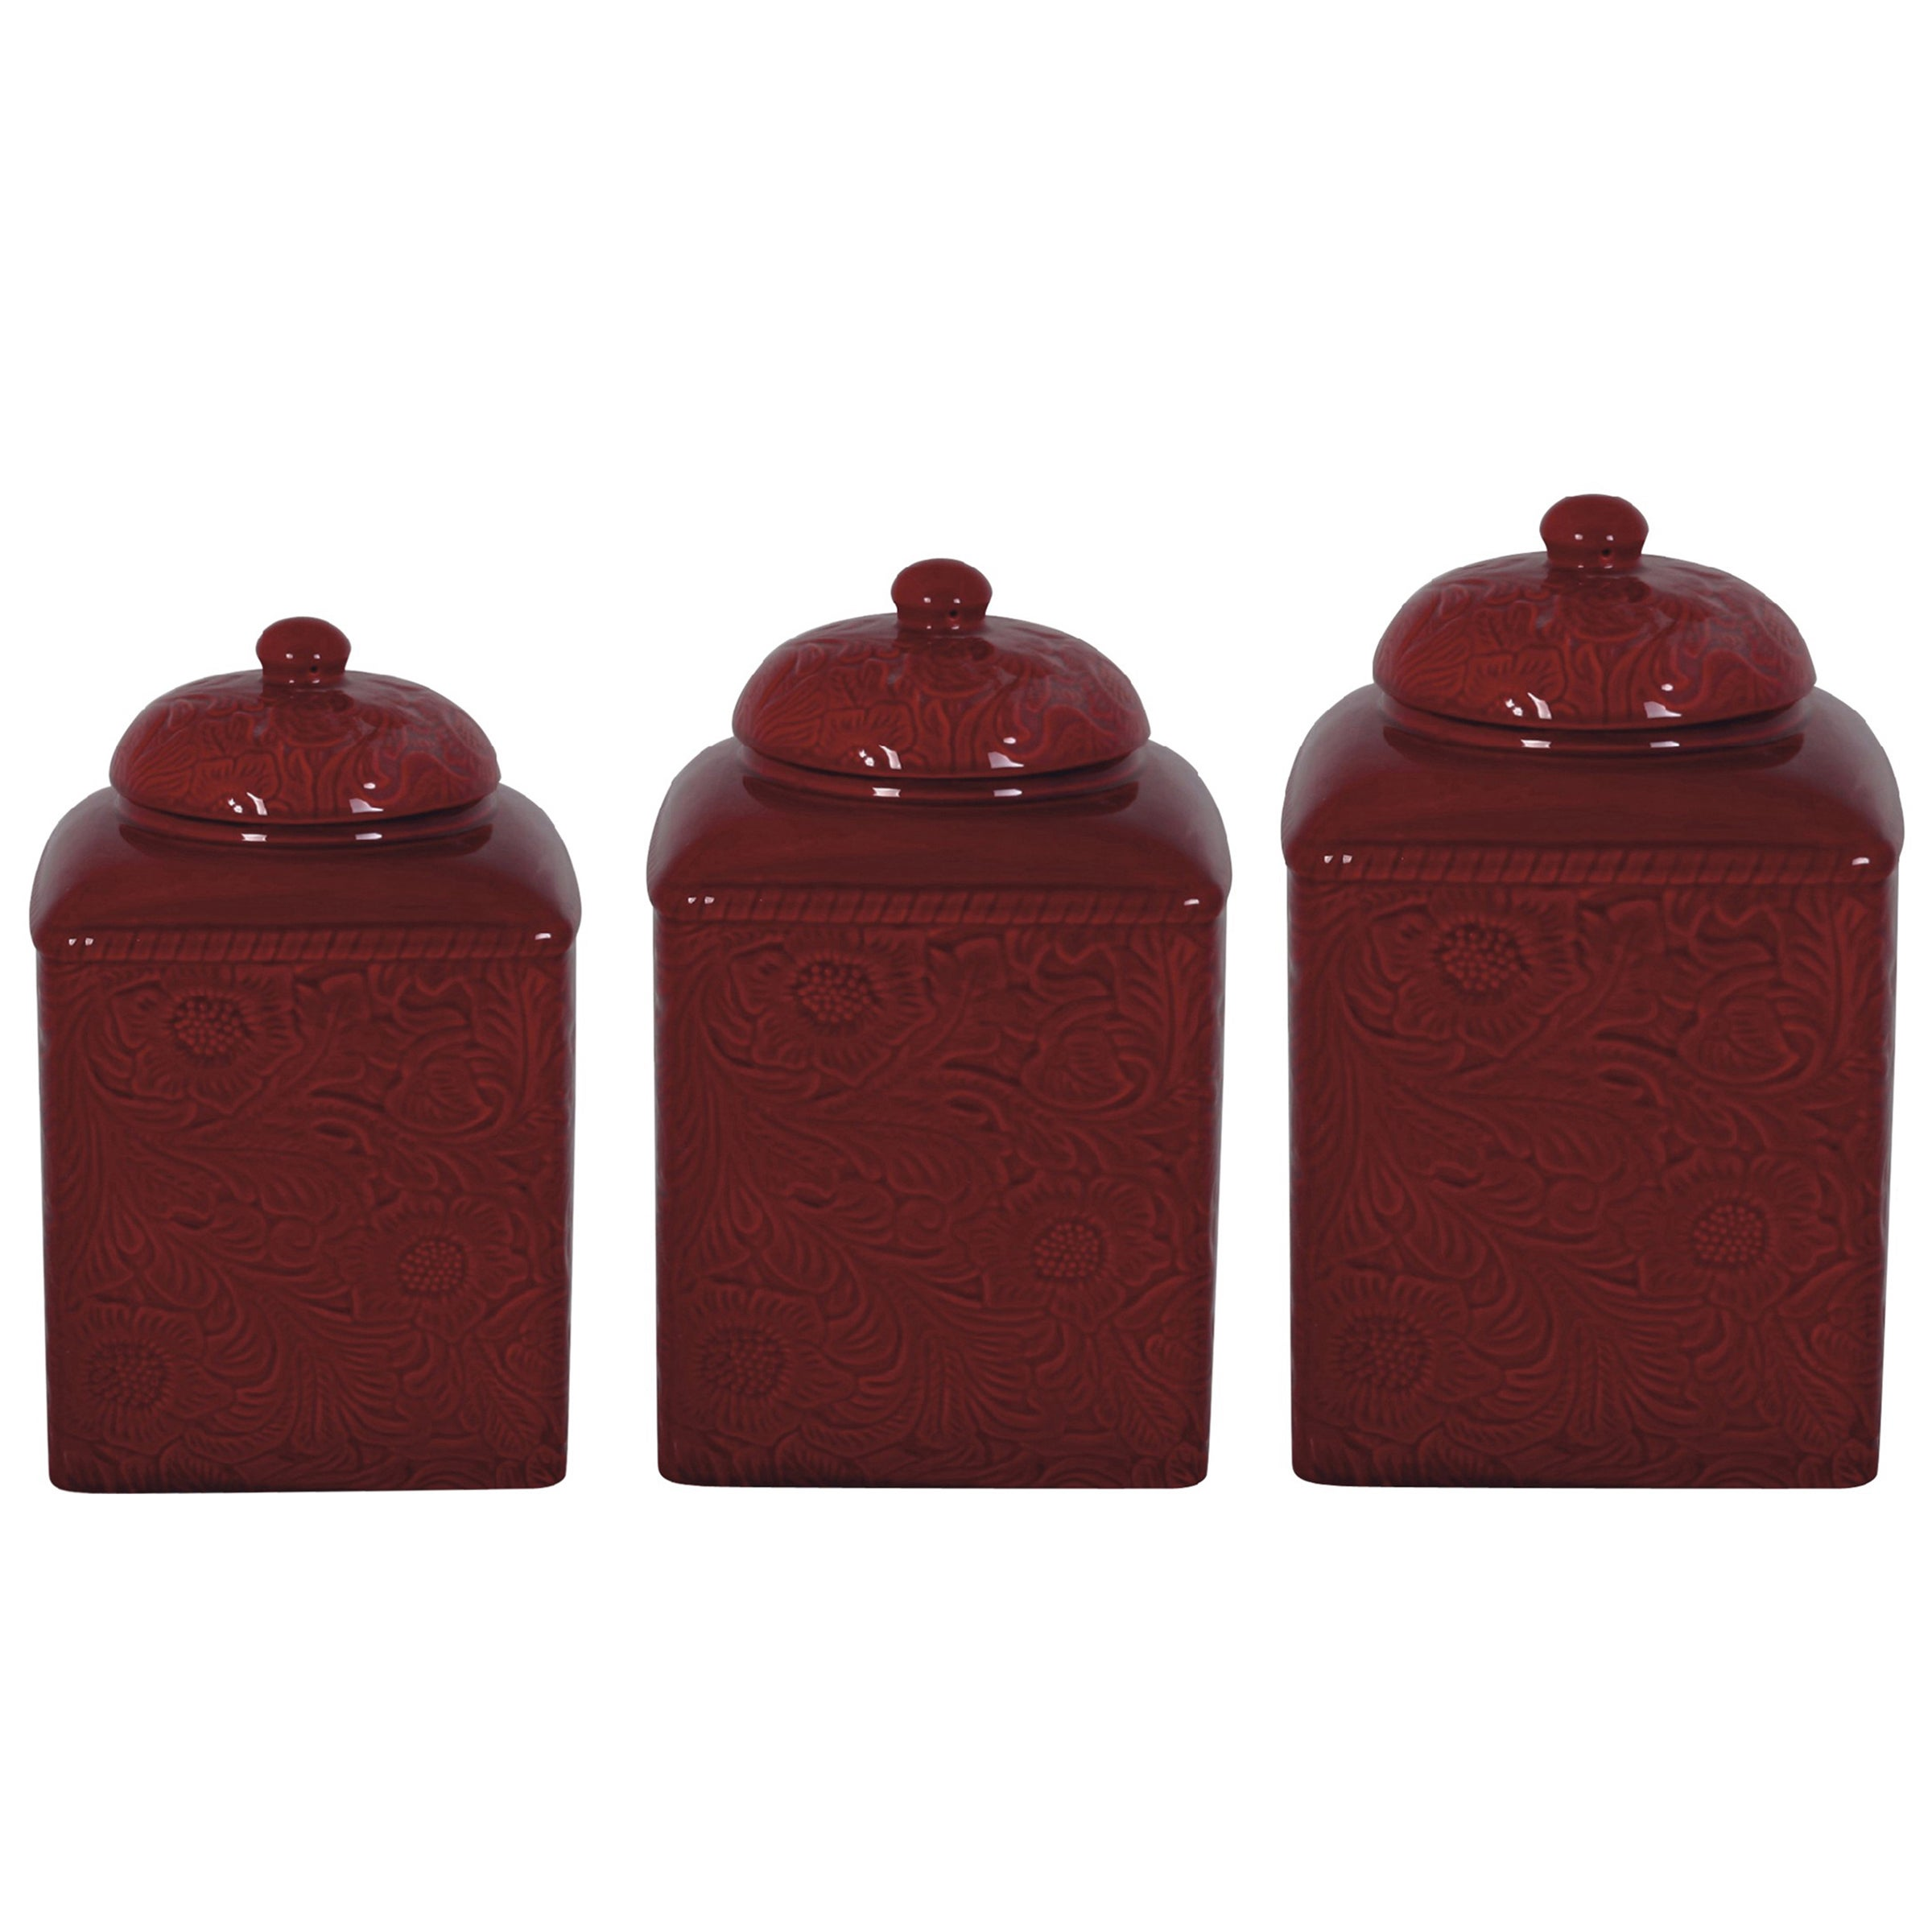 Hiend Accents Savannah Red Canister 3 Piece Set On Sale Overstock 9958684